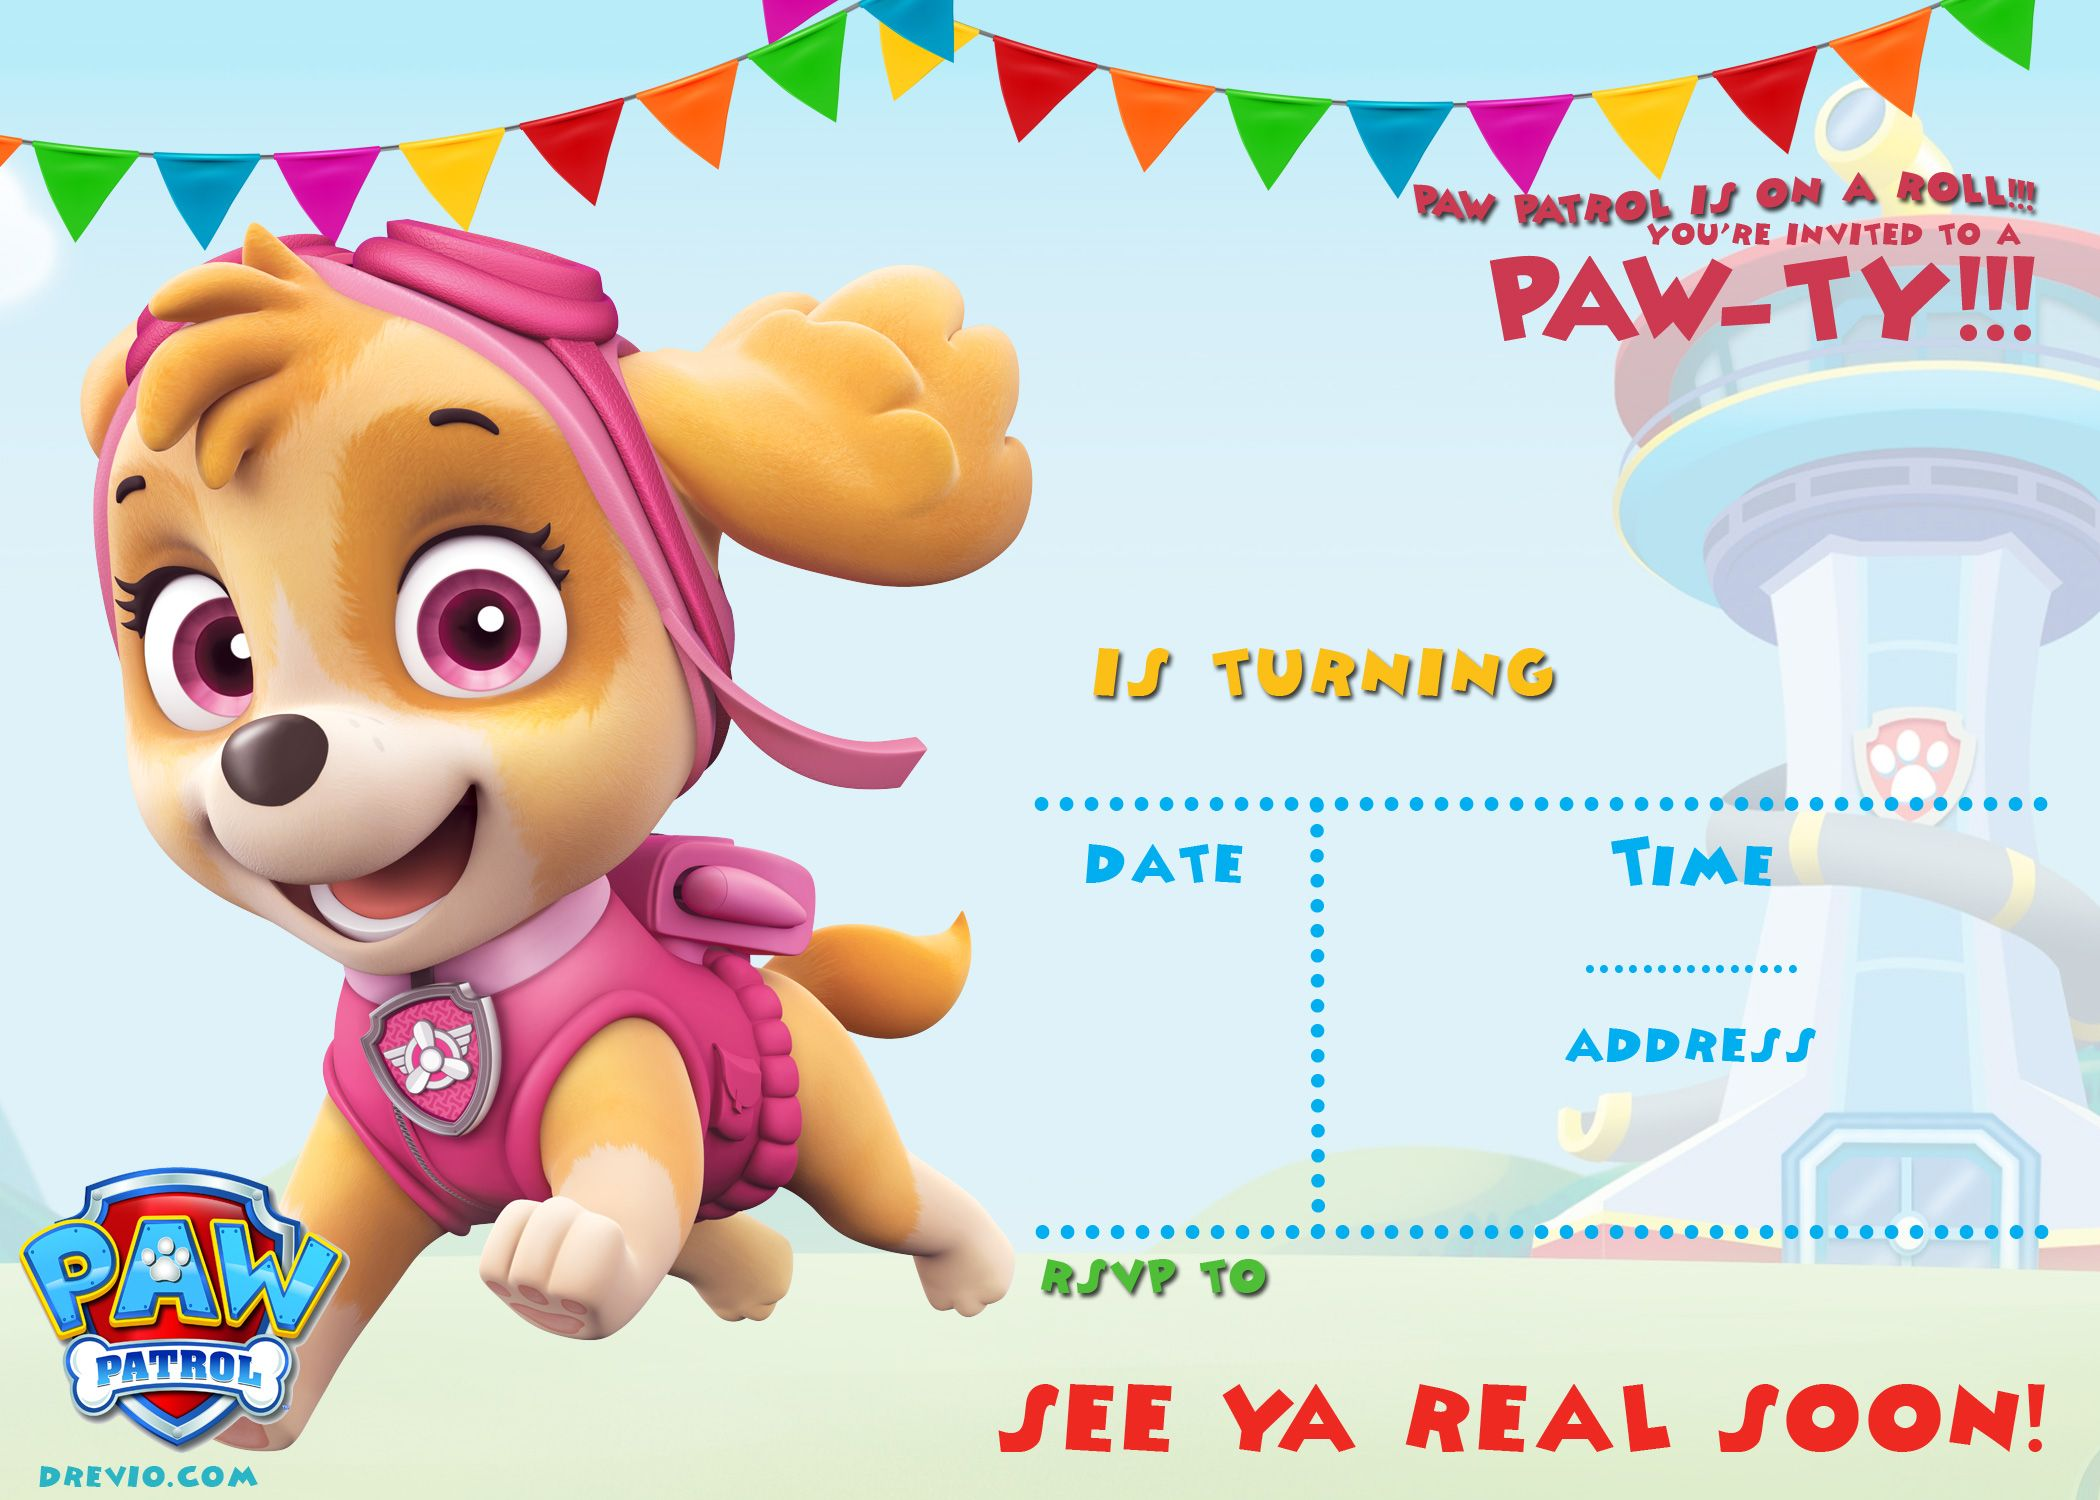 Free Printable Paw Patrol Invitation Template All Characters Drevio Paw Patrol Birthday Invitations Paw Patrol Party Invitations Paw Patrol Party Printables